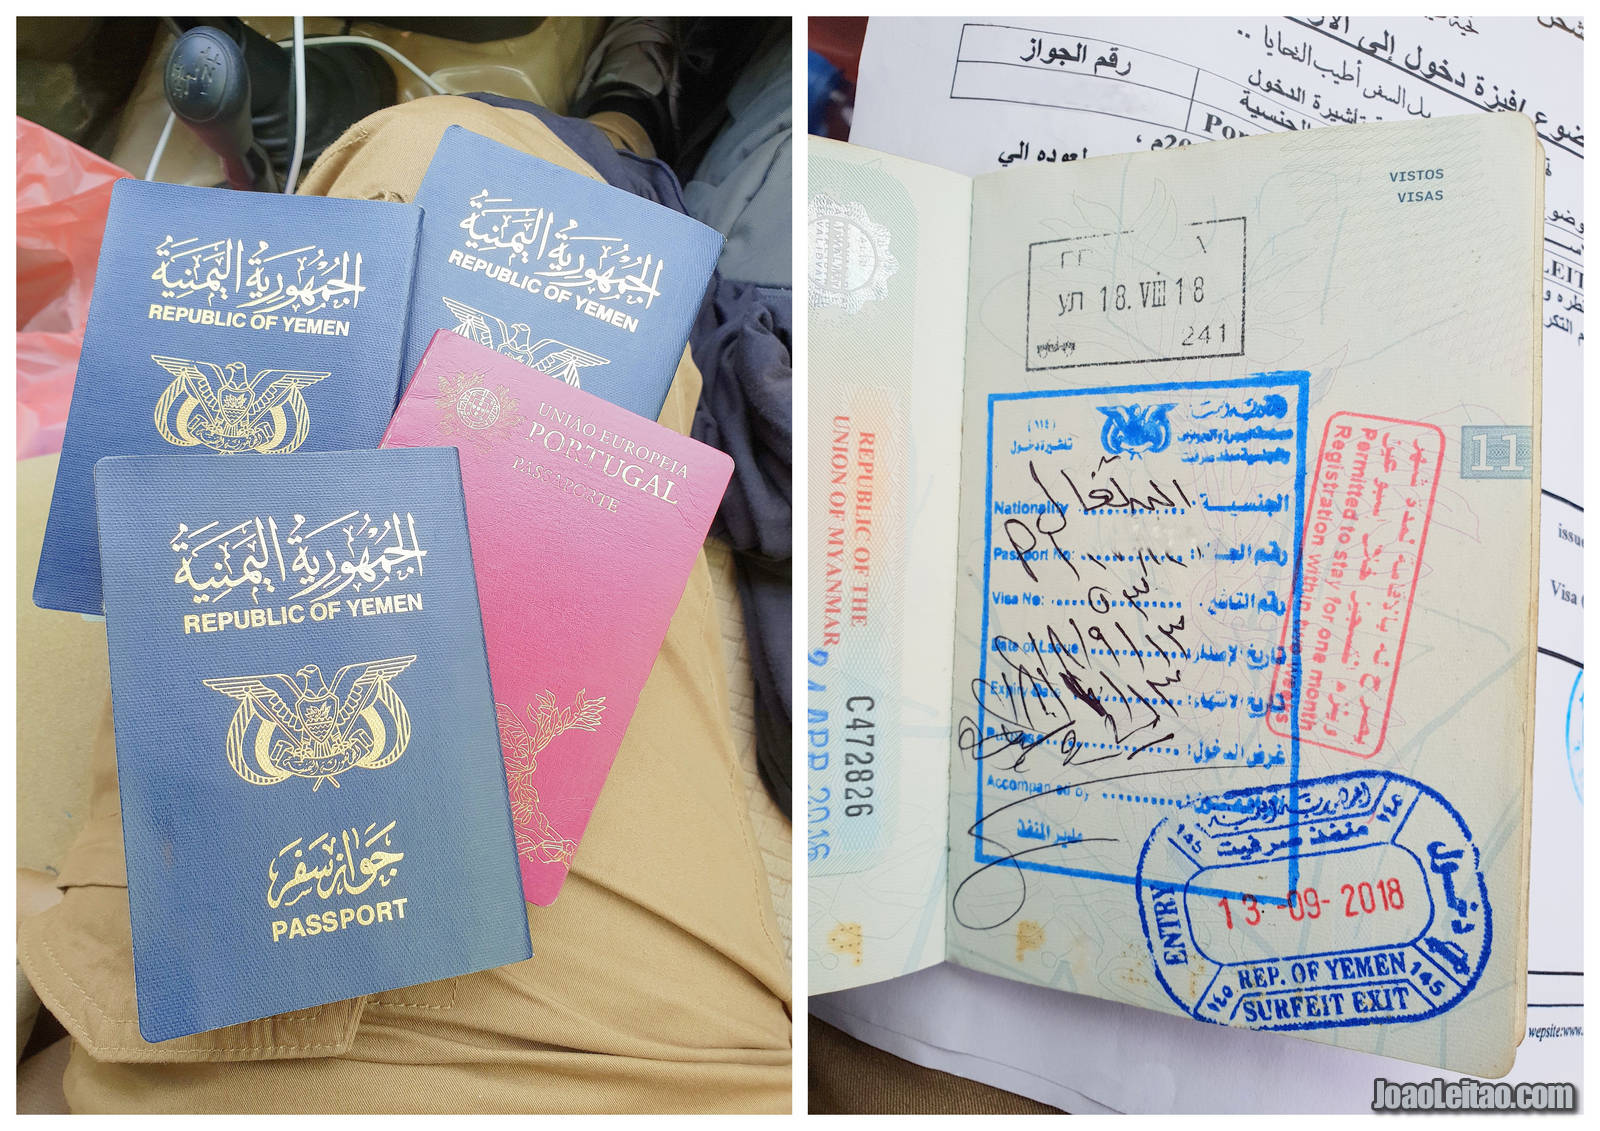 YEMEN VISA PASSPORT